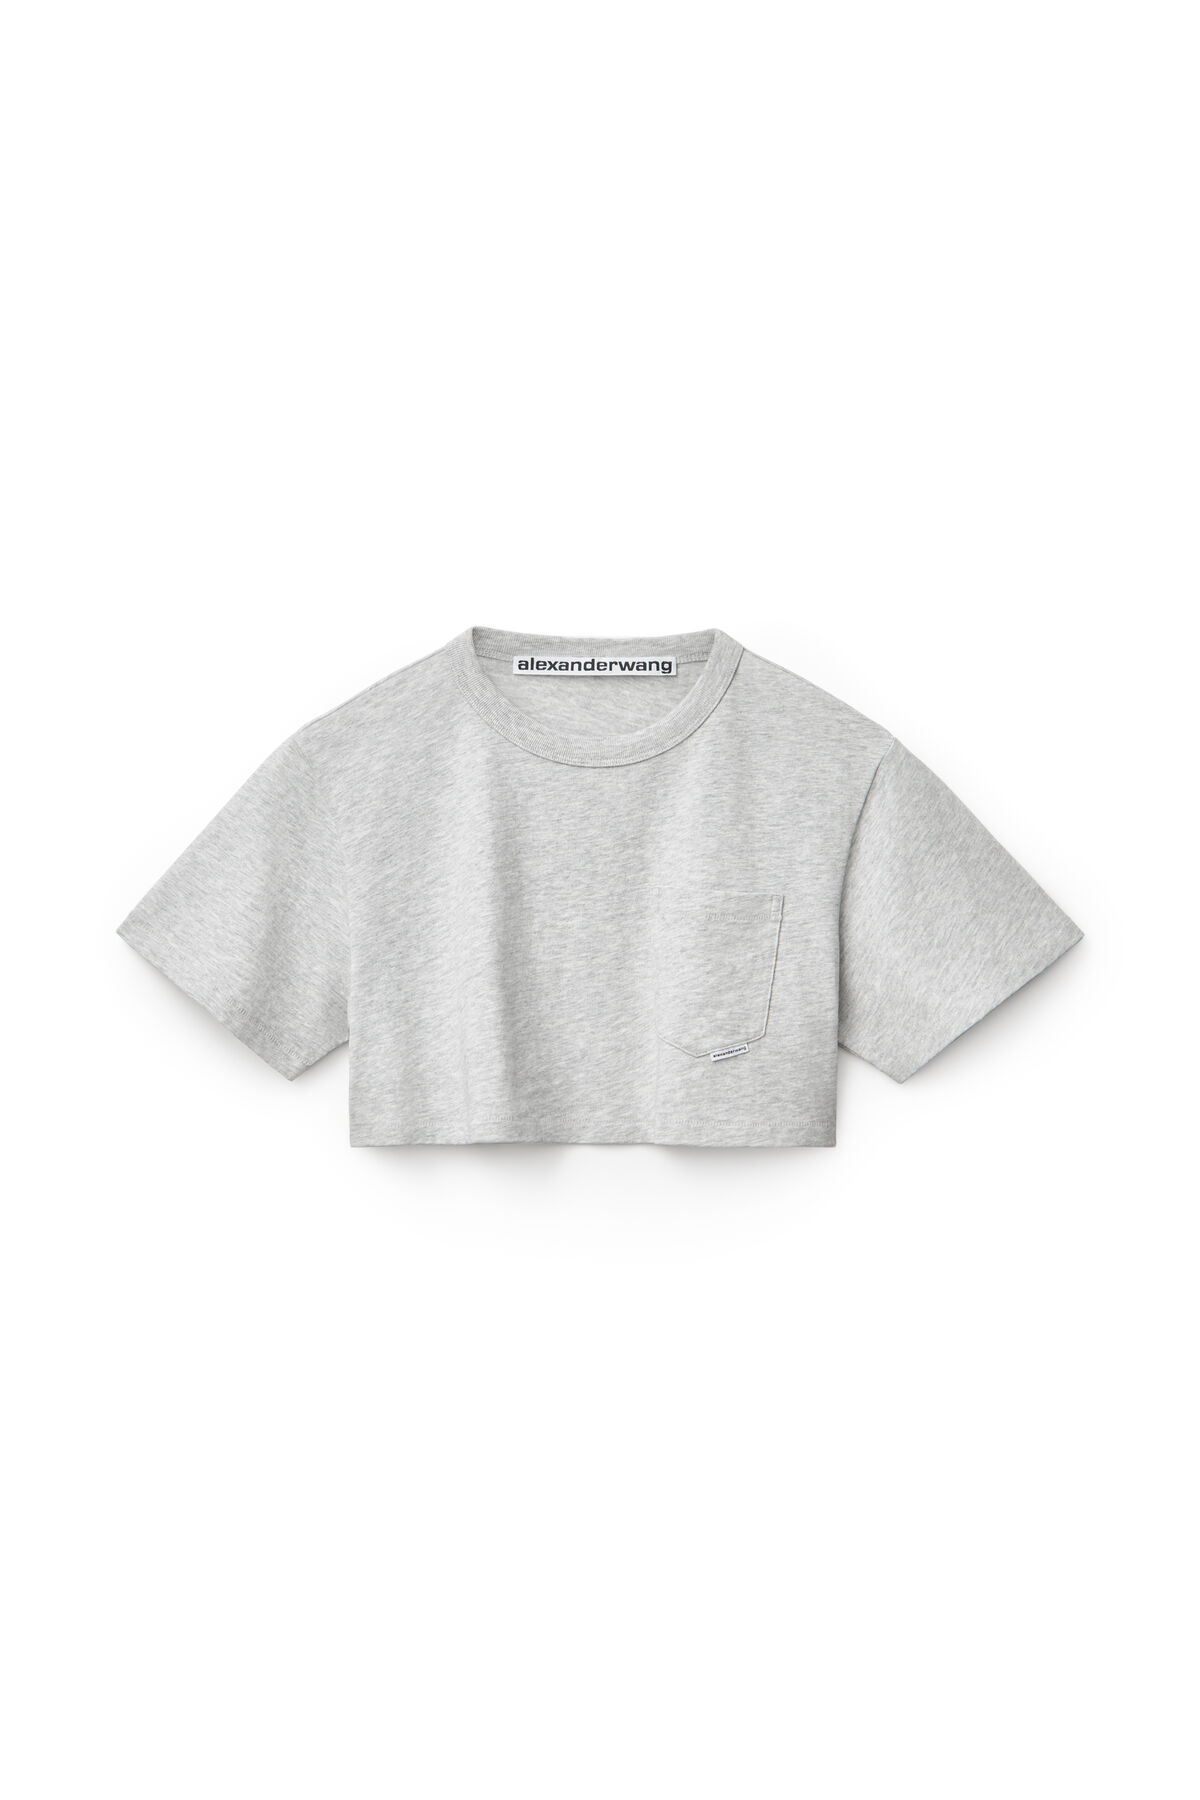 high twist crop tee by Alexander Wang, available on alexanderwang.com for $85 Kylie Jenner Top SIMILAR PRODUCT